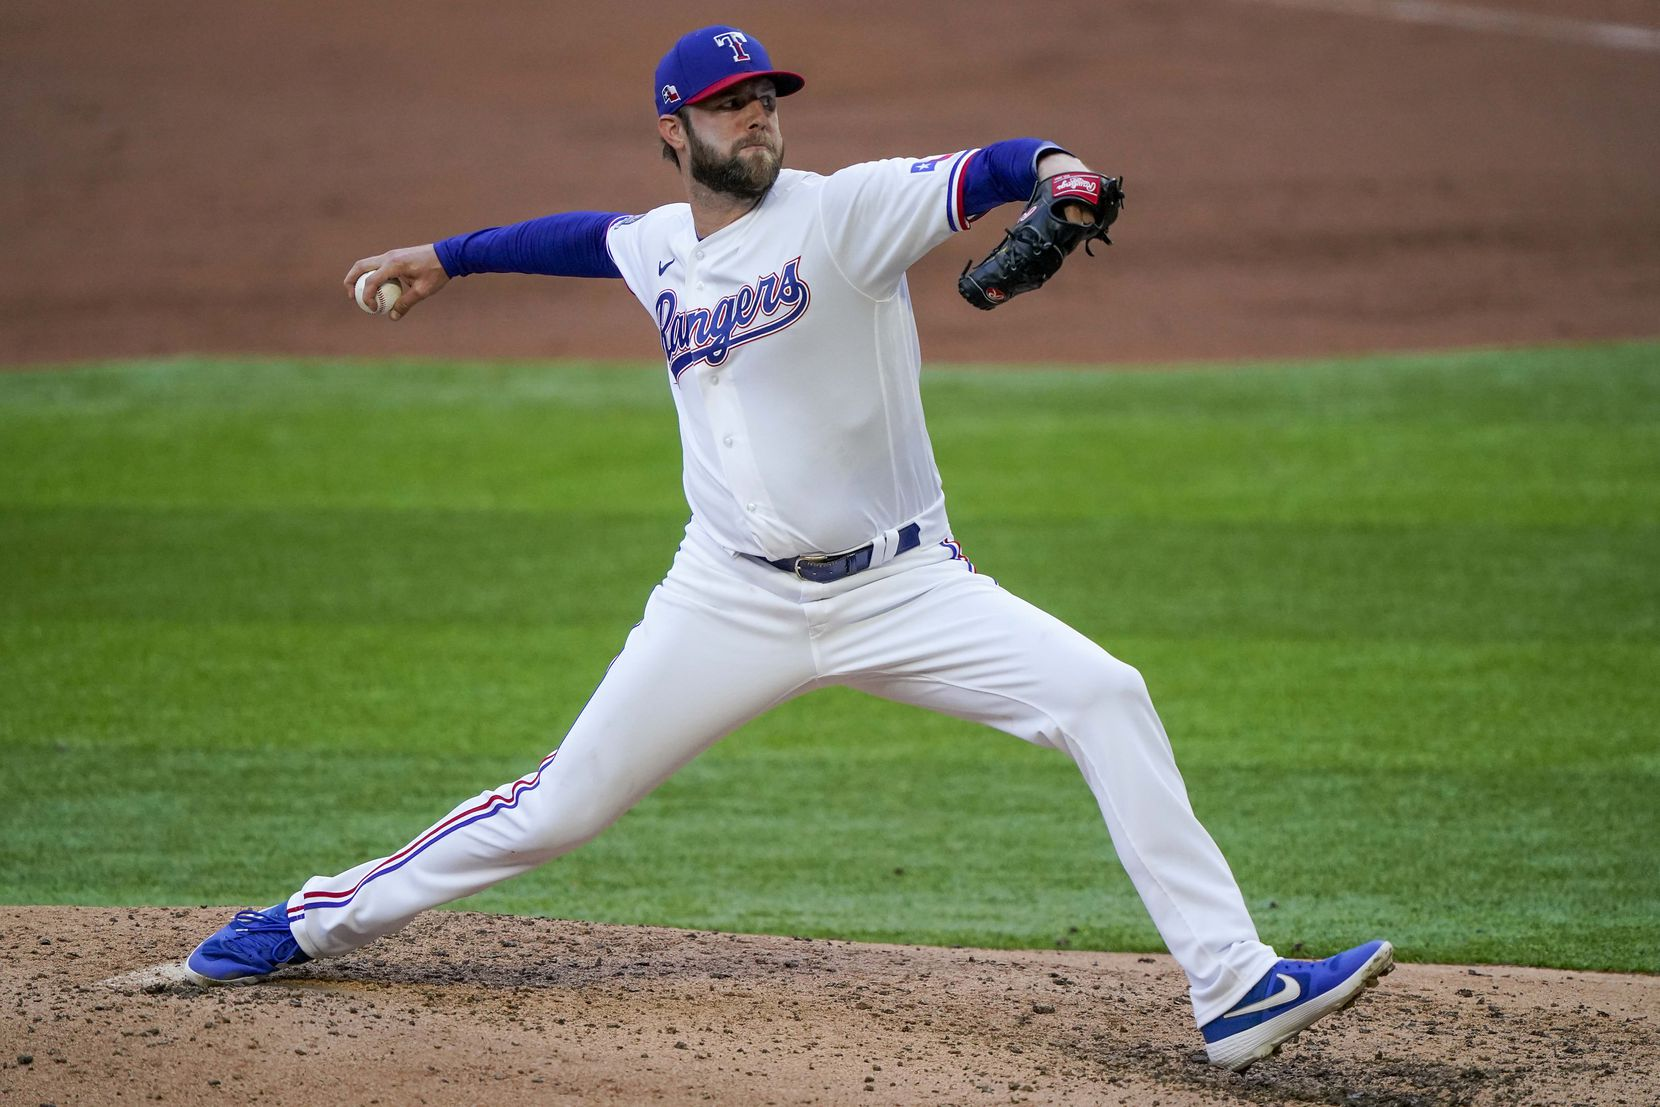 Jordan Lyles pitches in an intrasquad game during Texas Rangers Summer Camp at Globe Life Field on Friday, July 17, 2020.